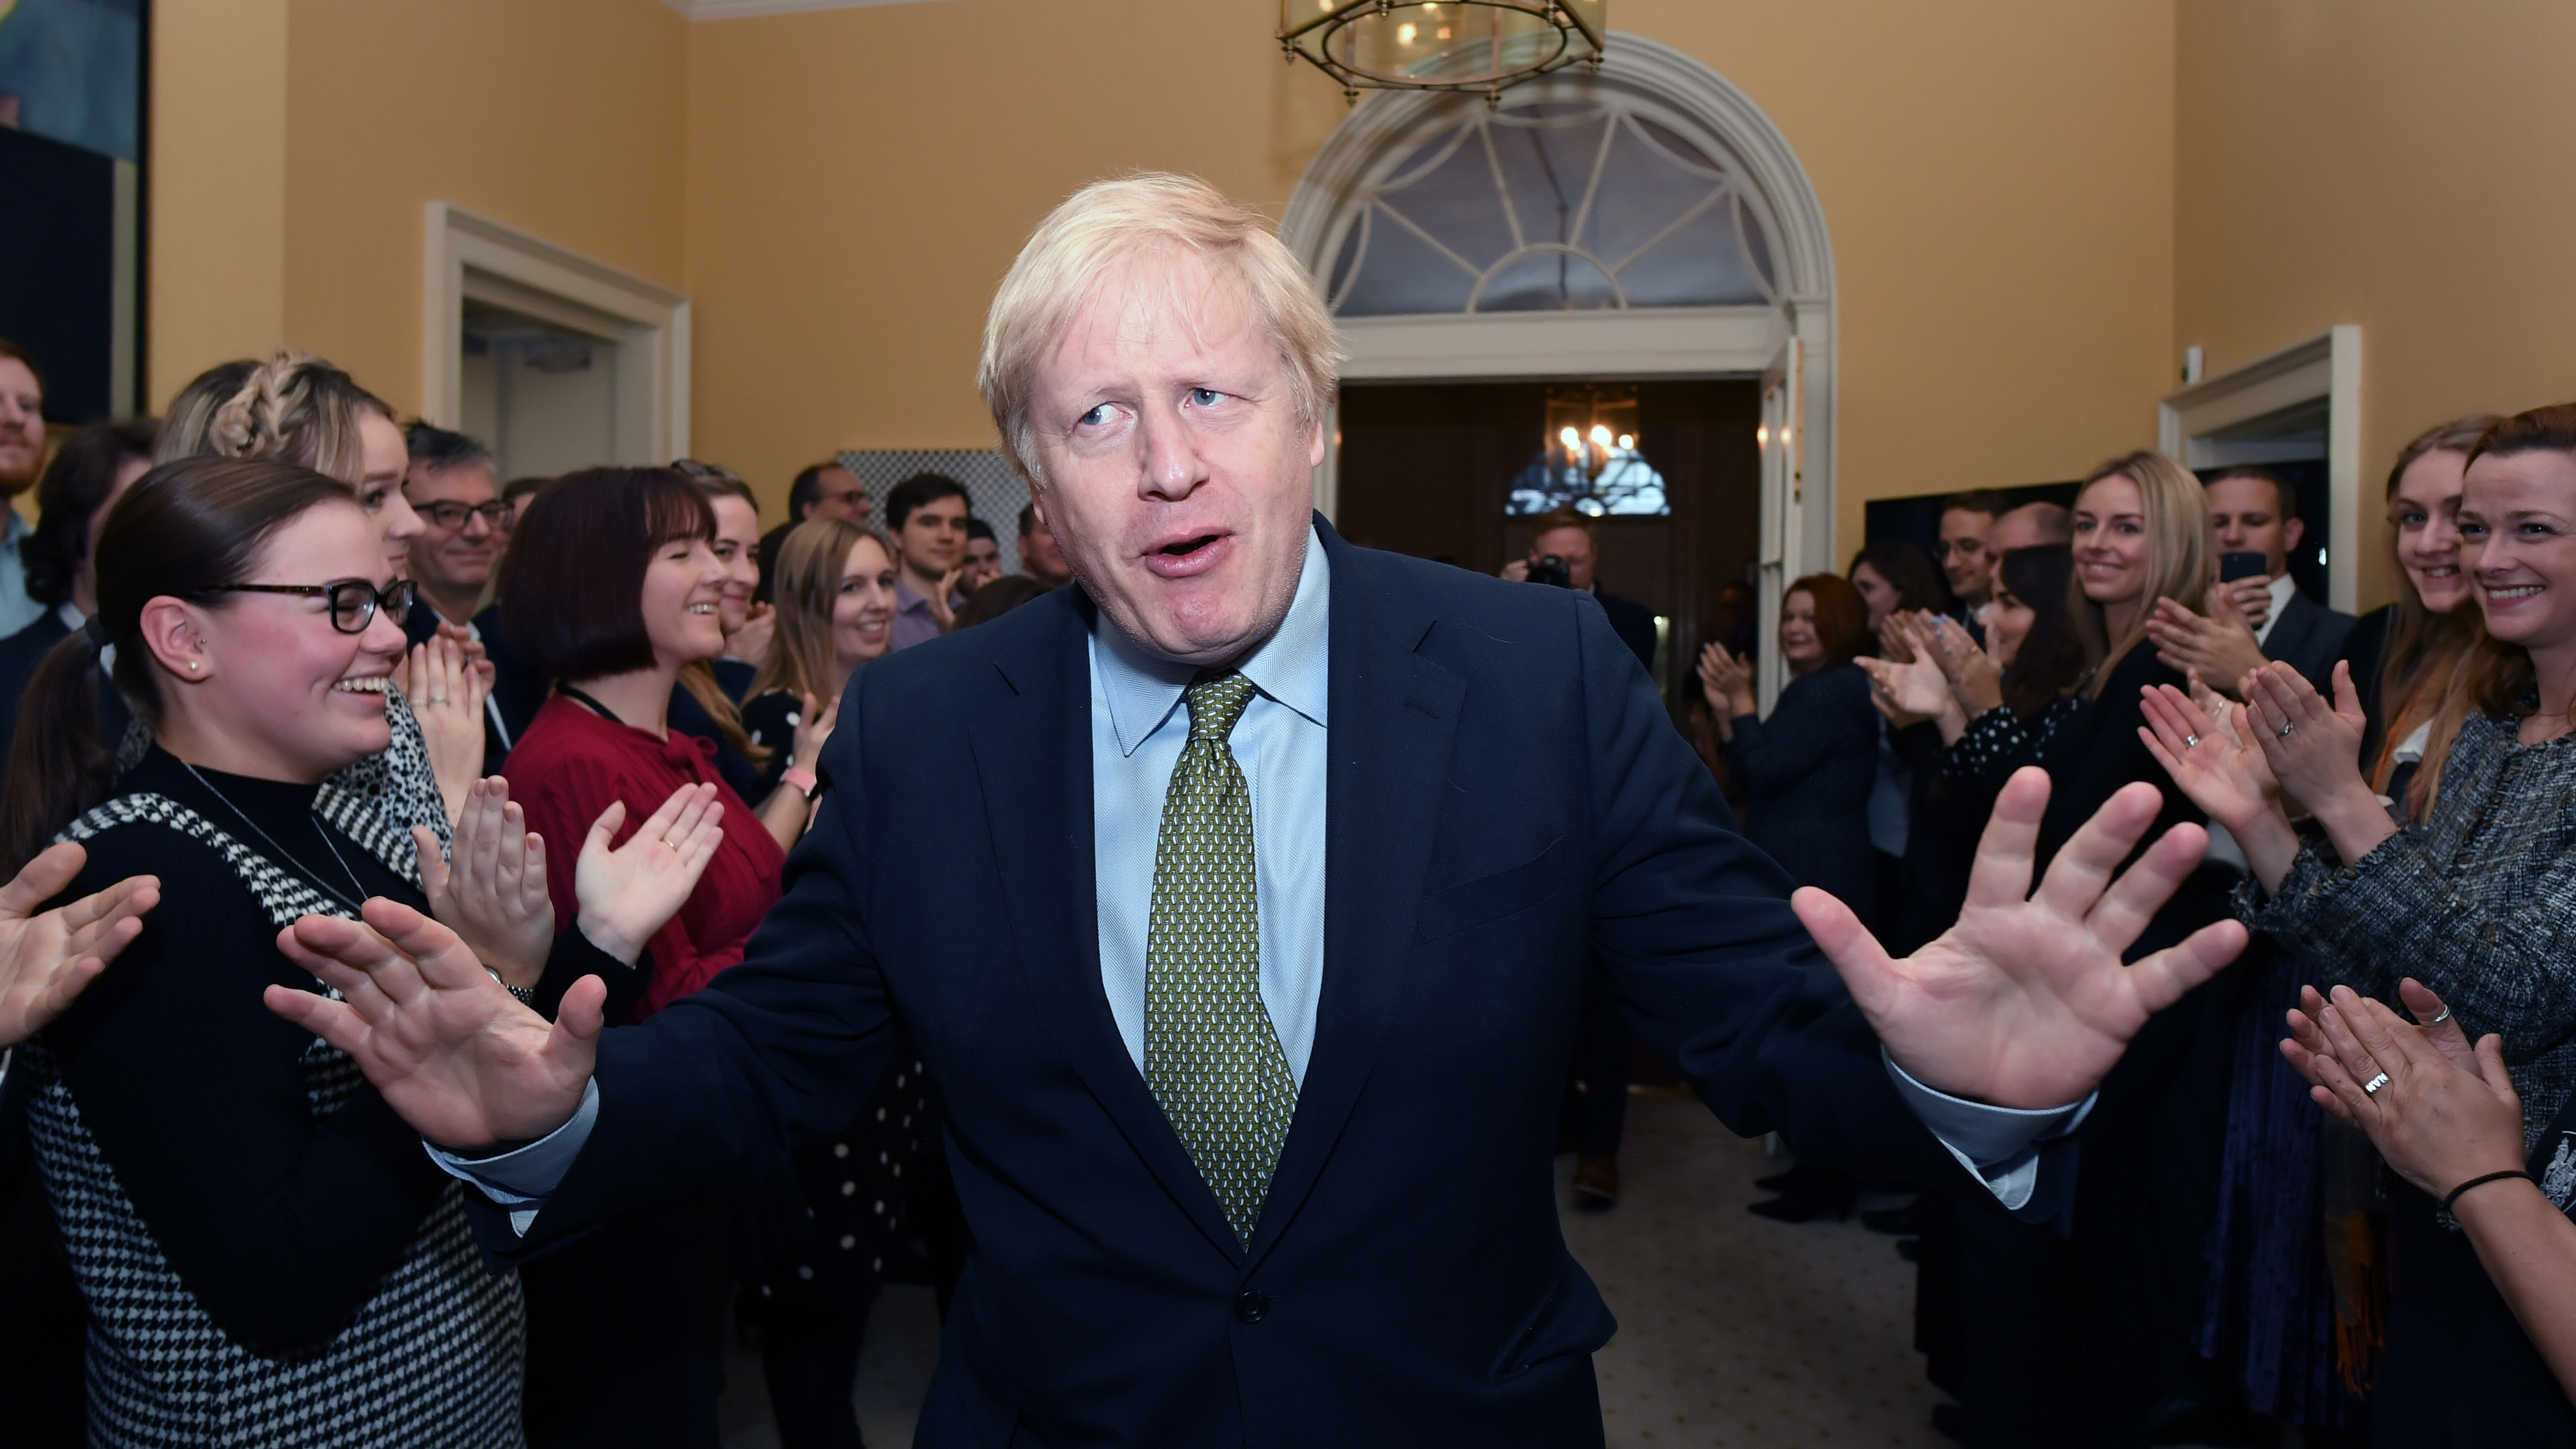 Boris Johnson And Conservative Party Win Large Majority In U.K. Parliament